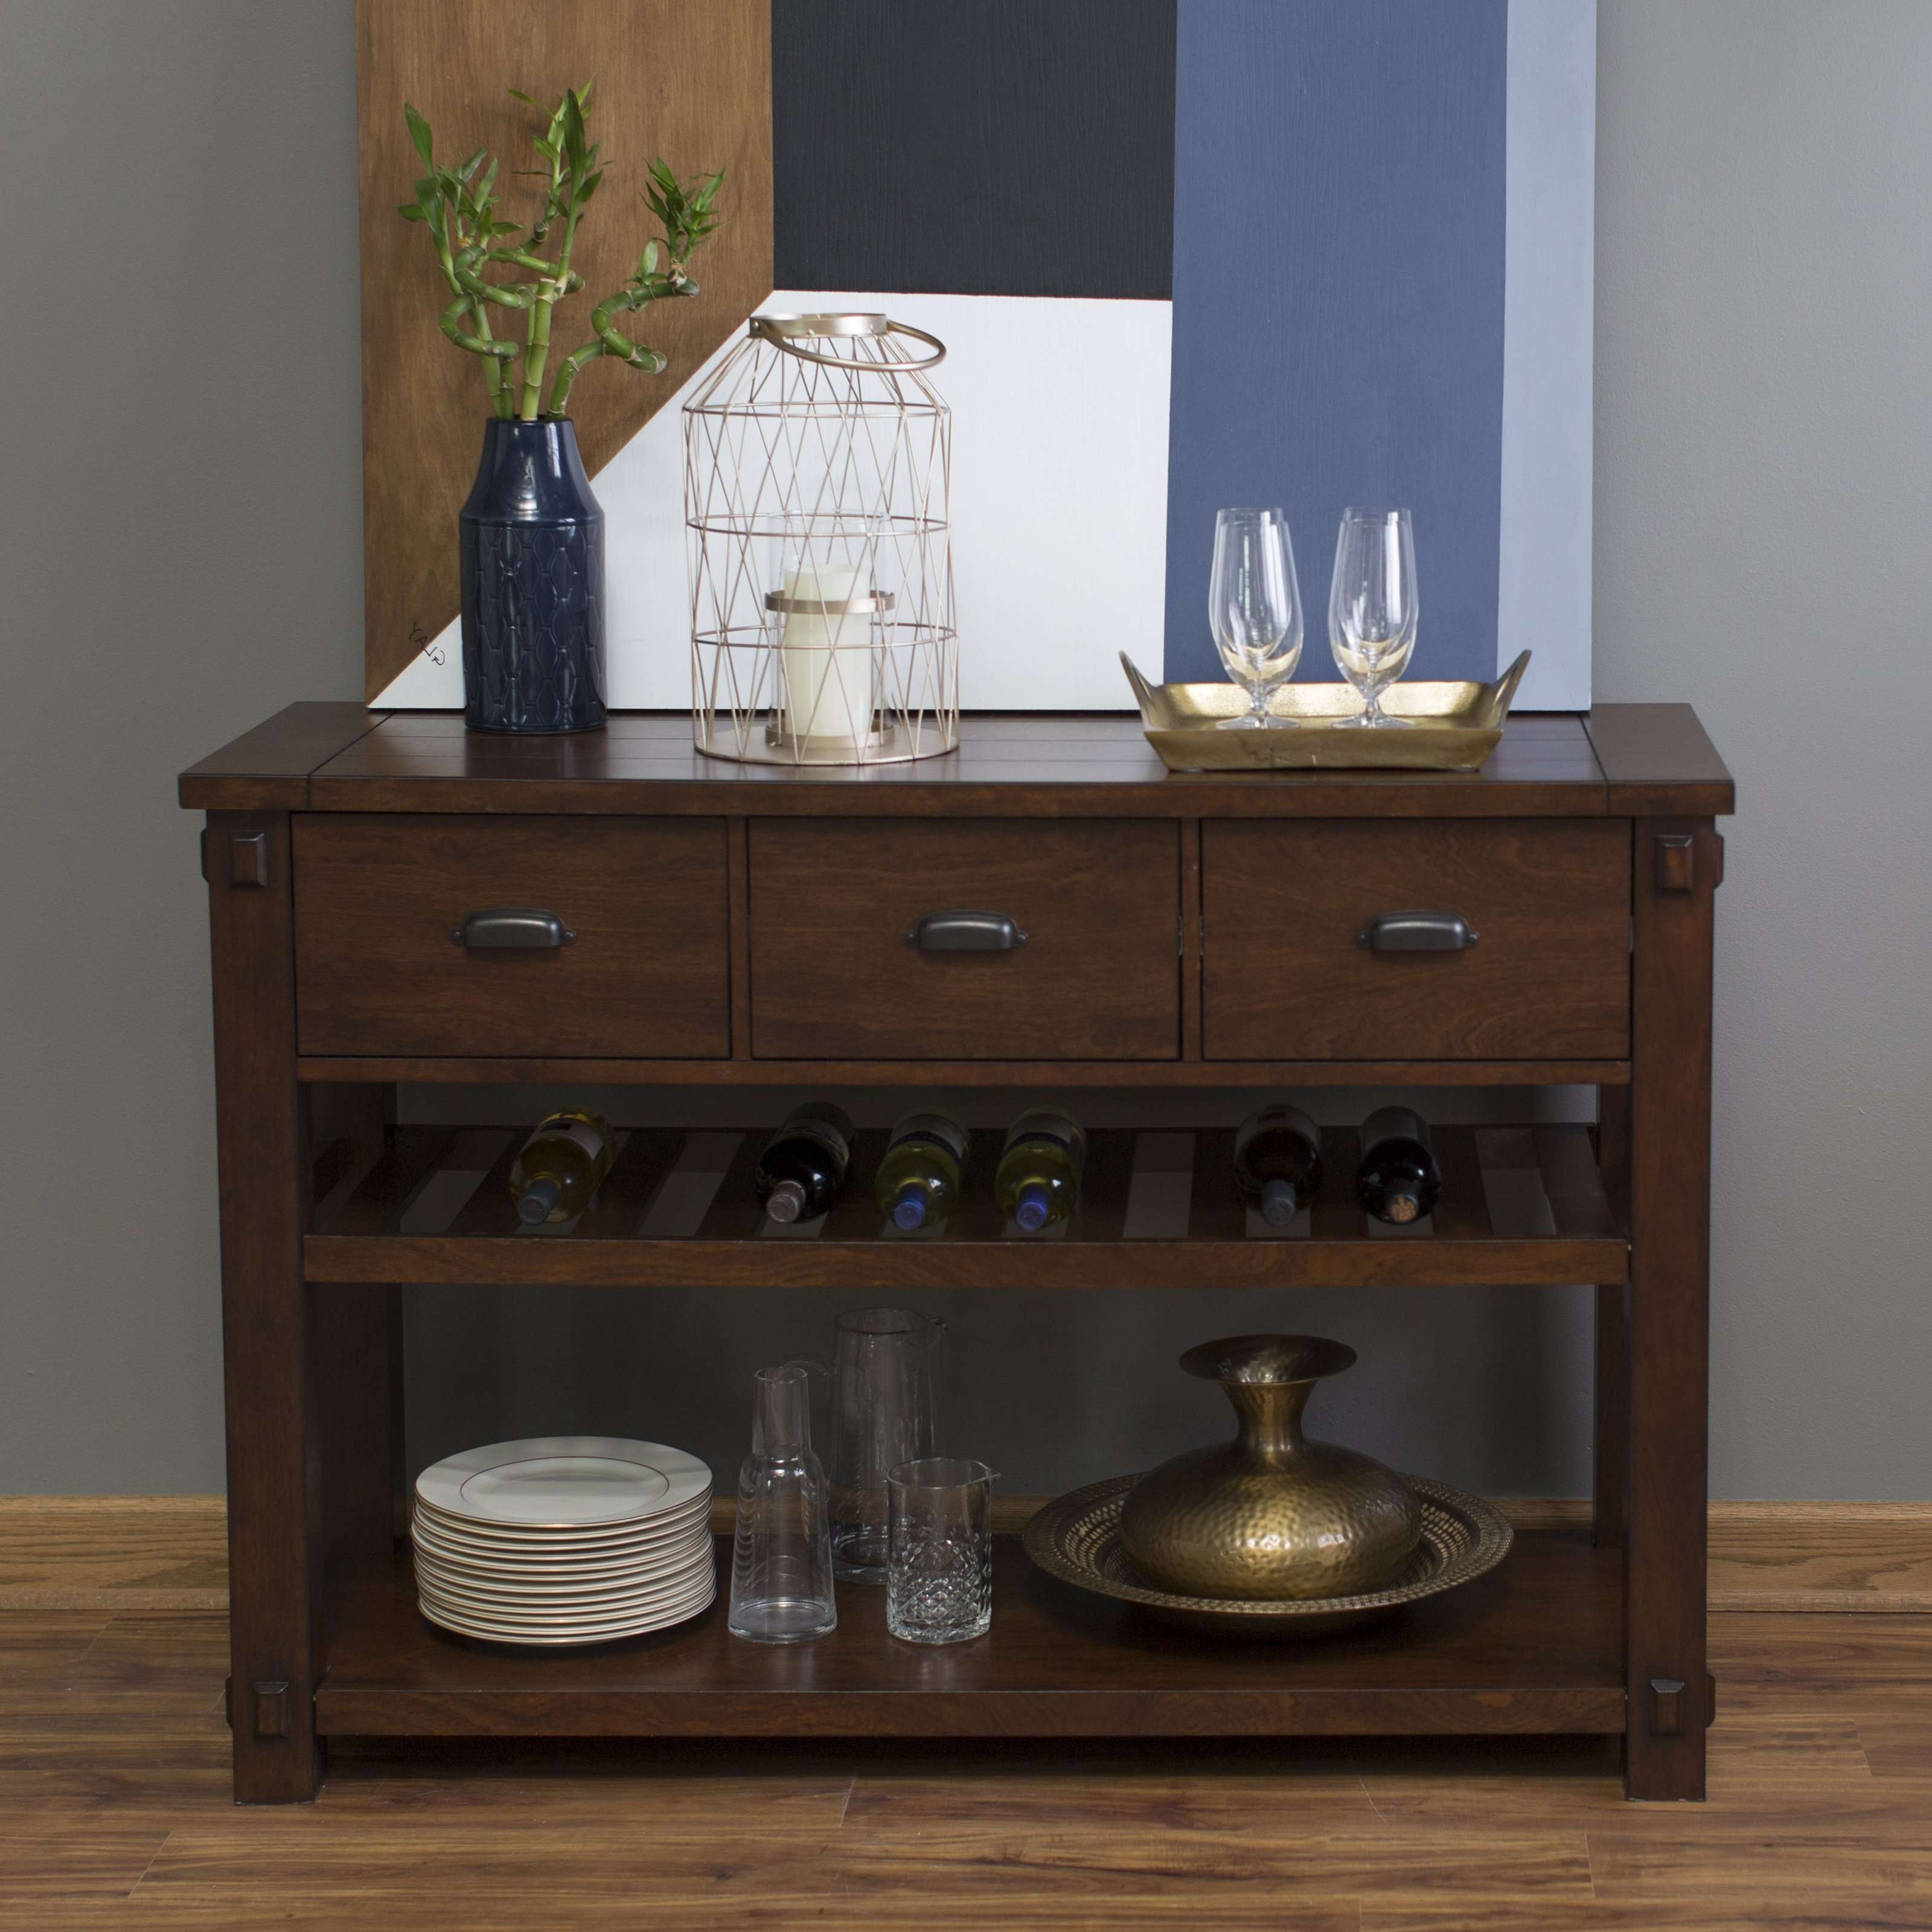 Sideboards & Buffets | Hayneedle Within Buffets Sideboards (View 4 of 20)